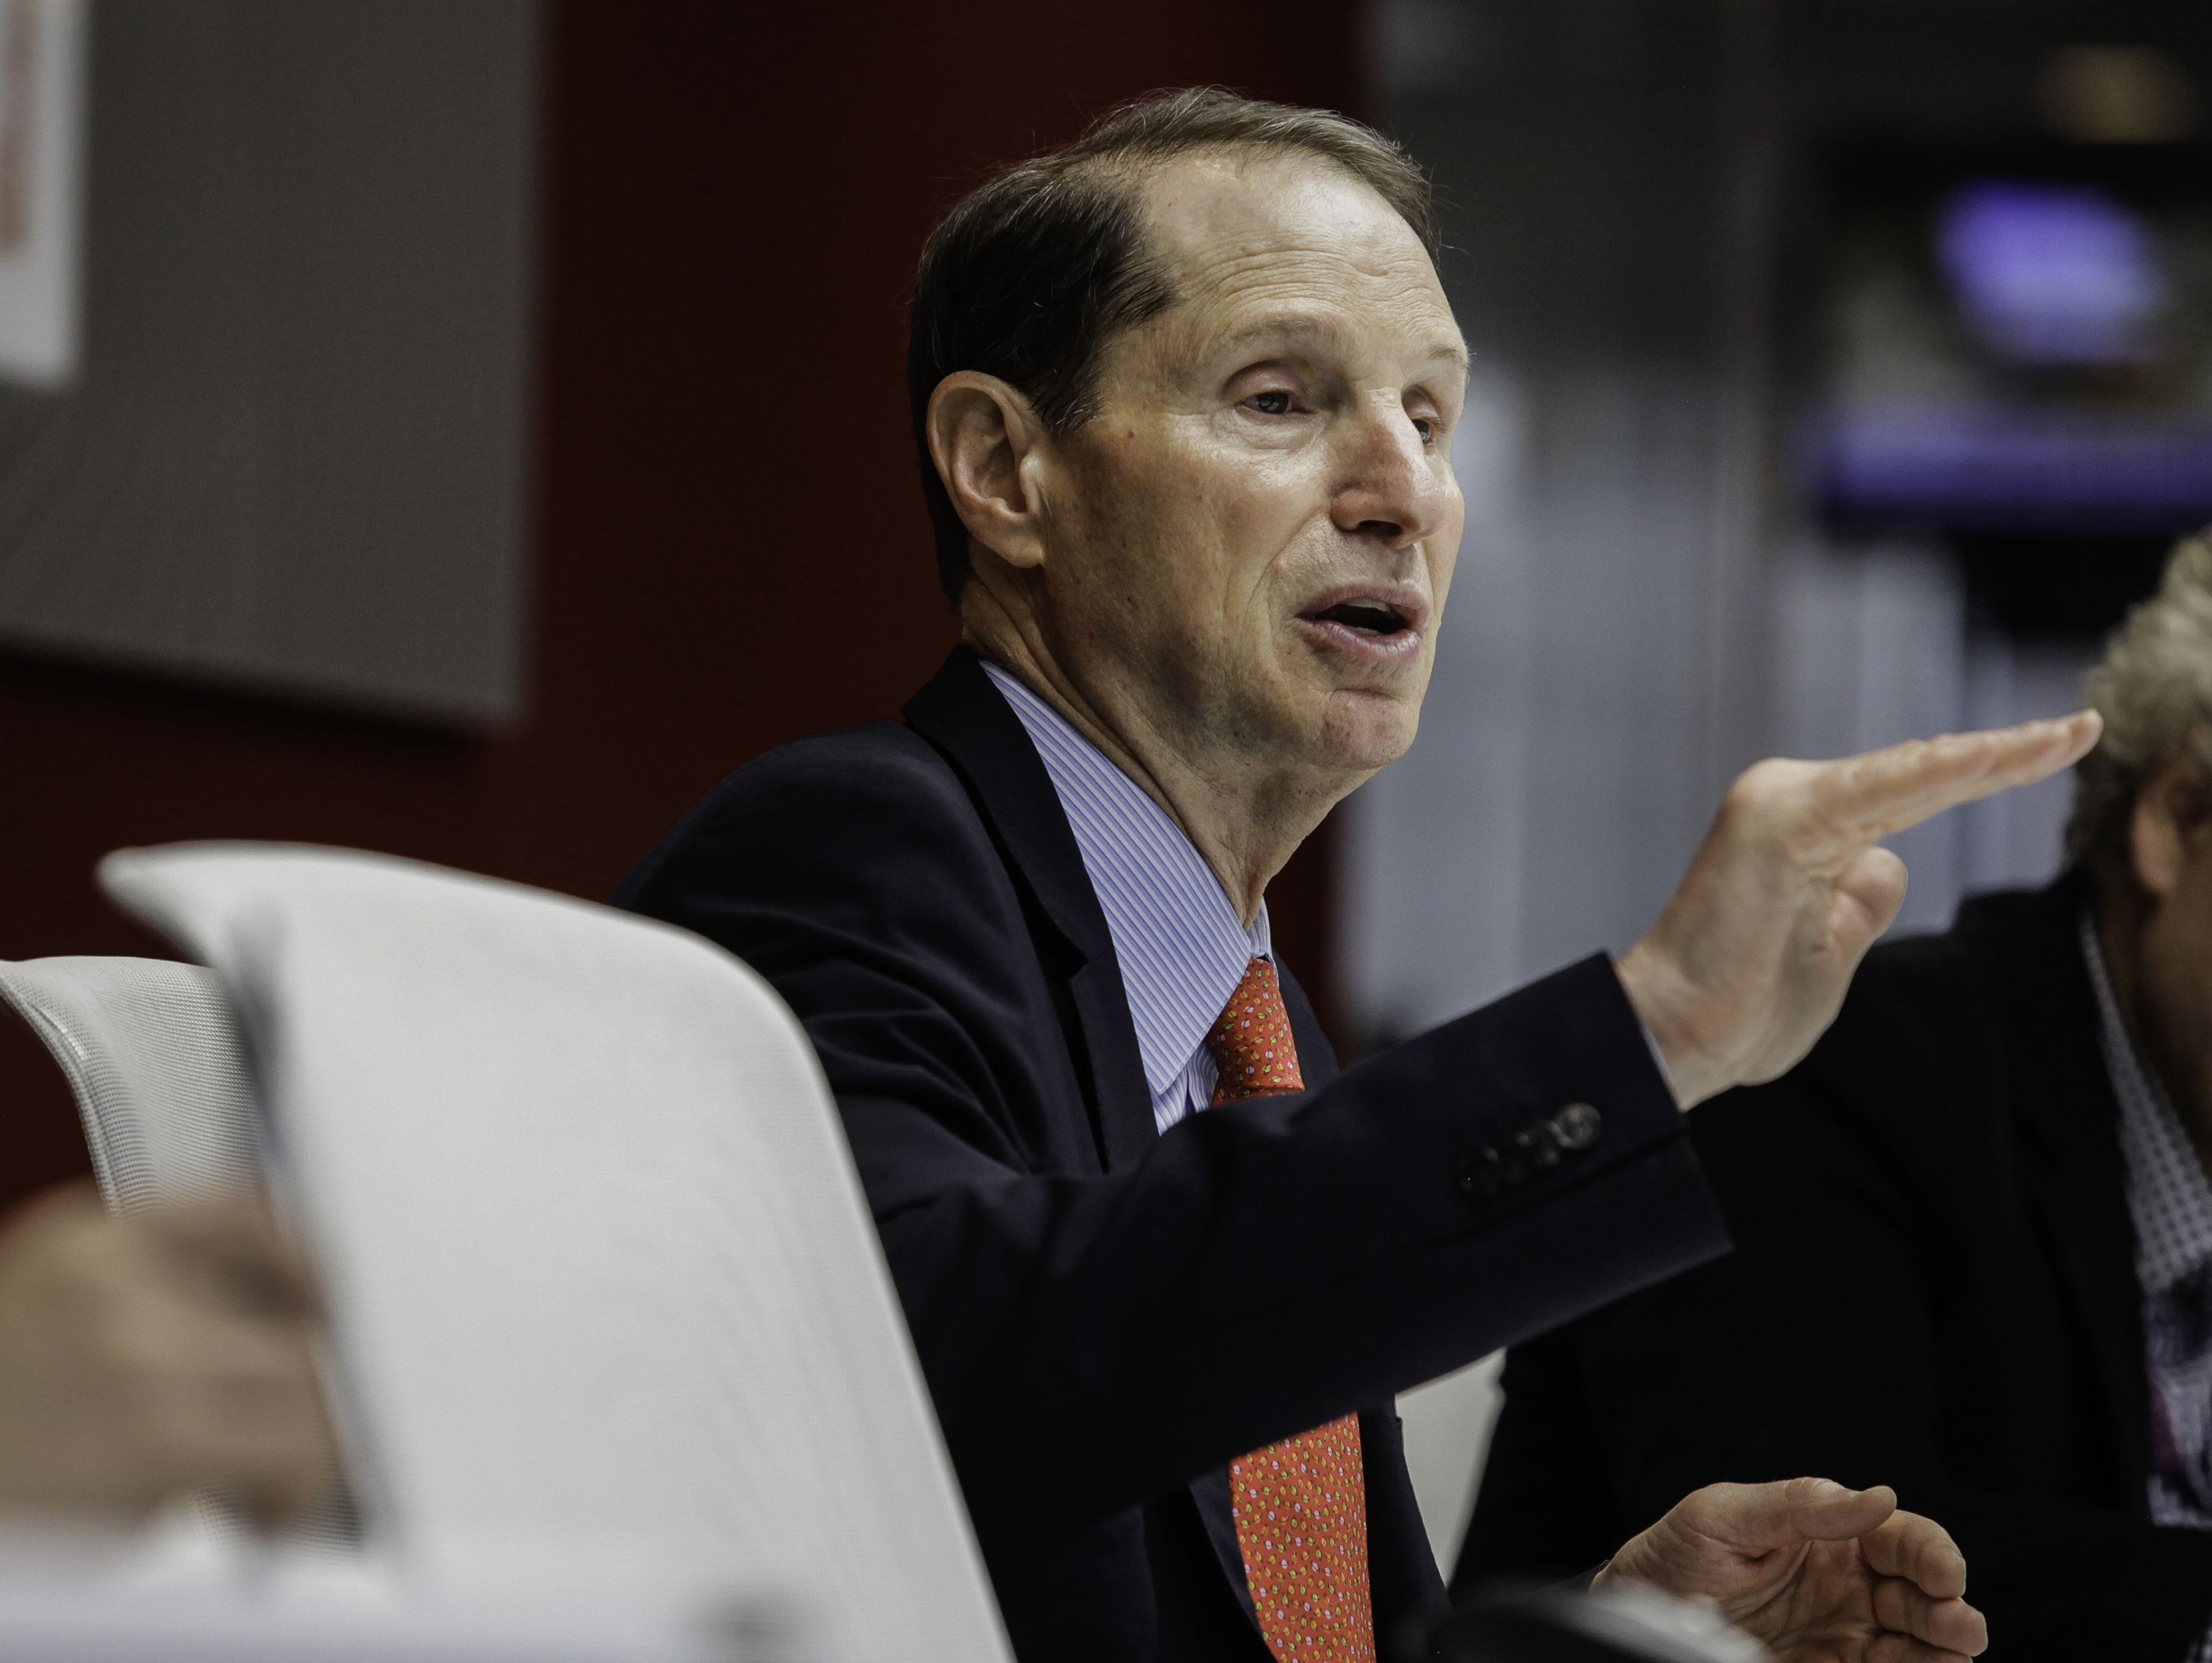 Wyden introduces bill to overhaul pass-through deduction and expand to accountants